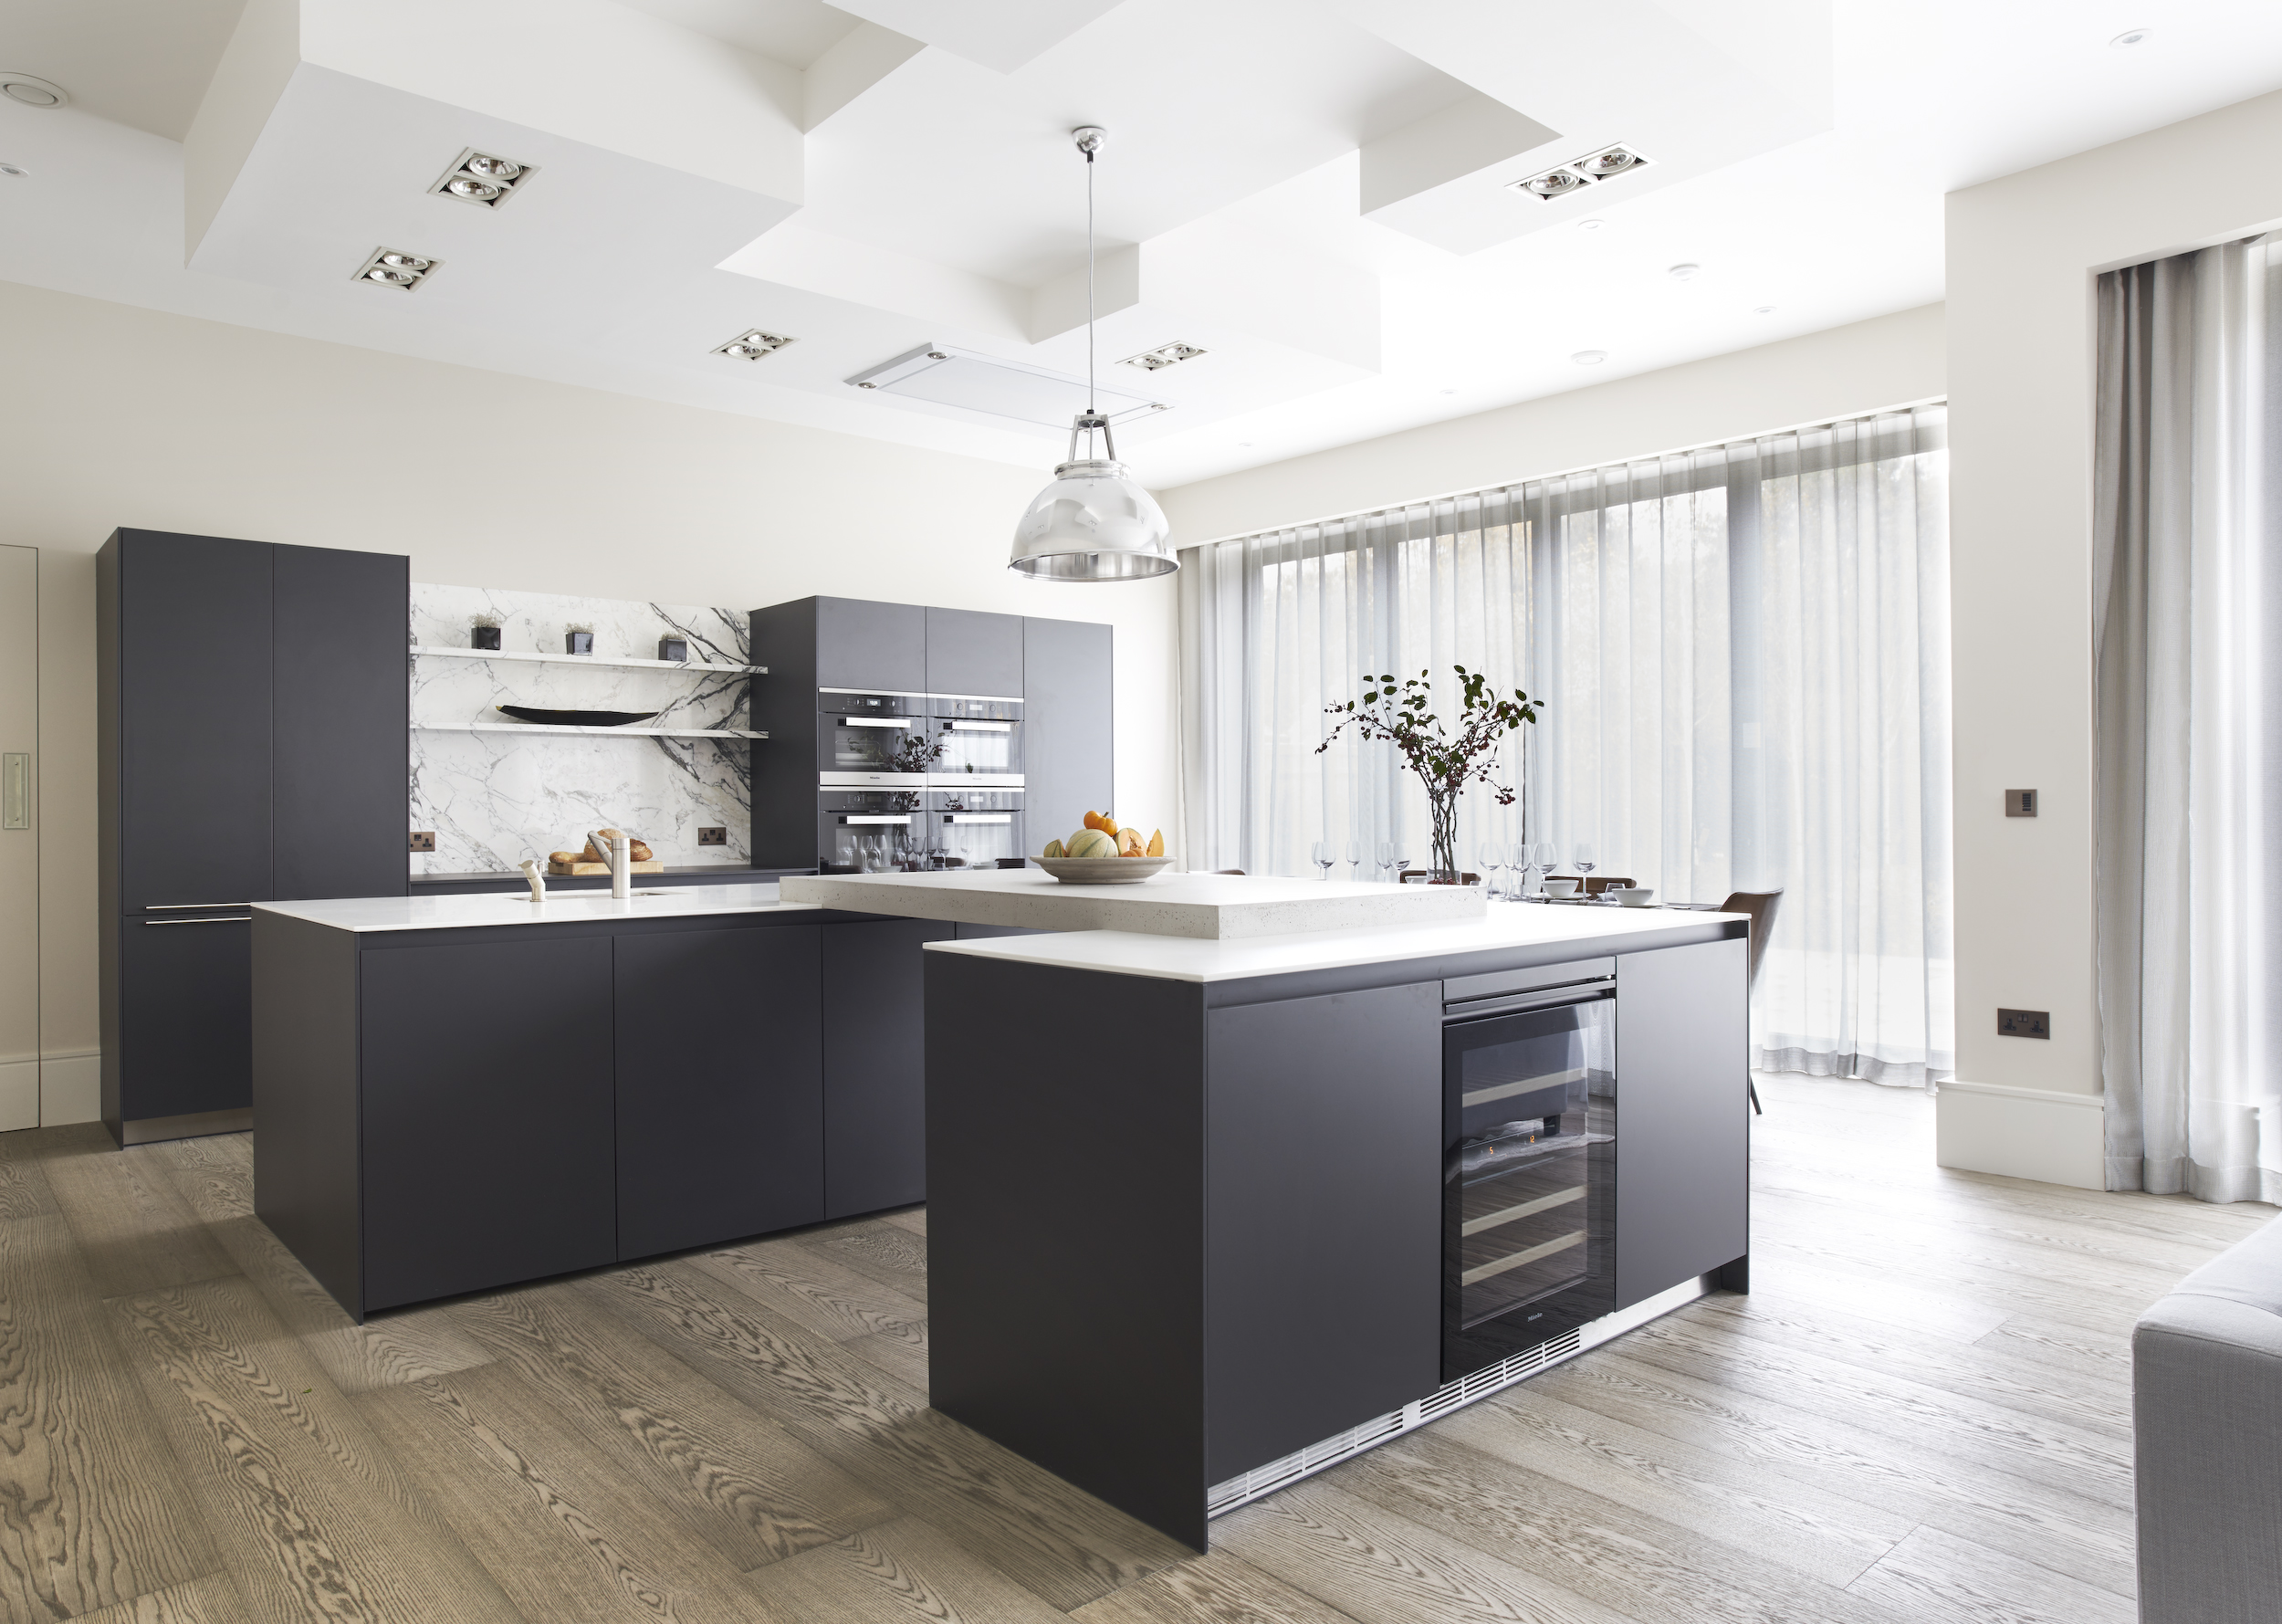 Luxury Kitchen Design Inspiration